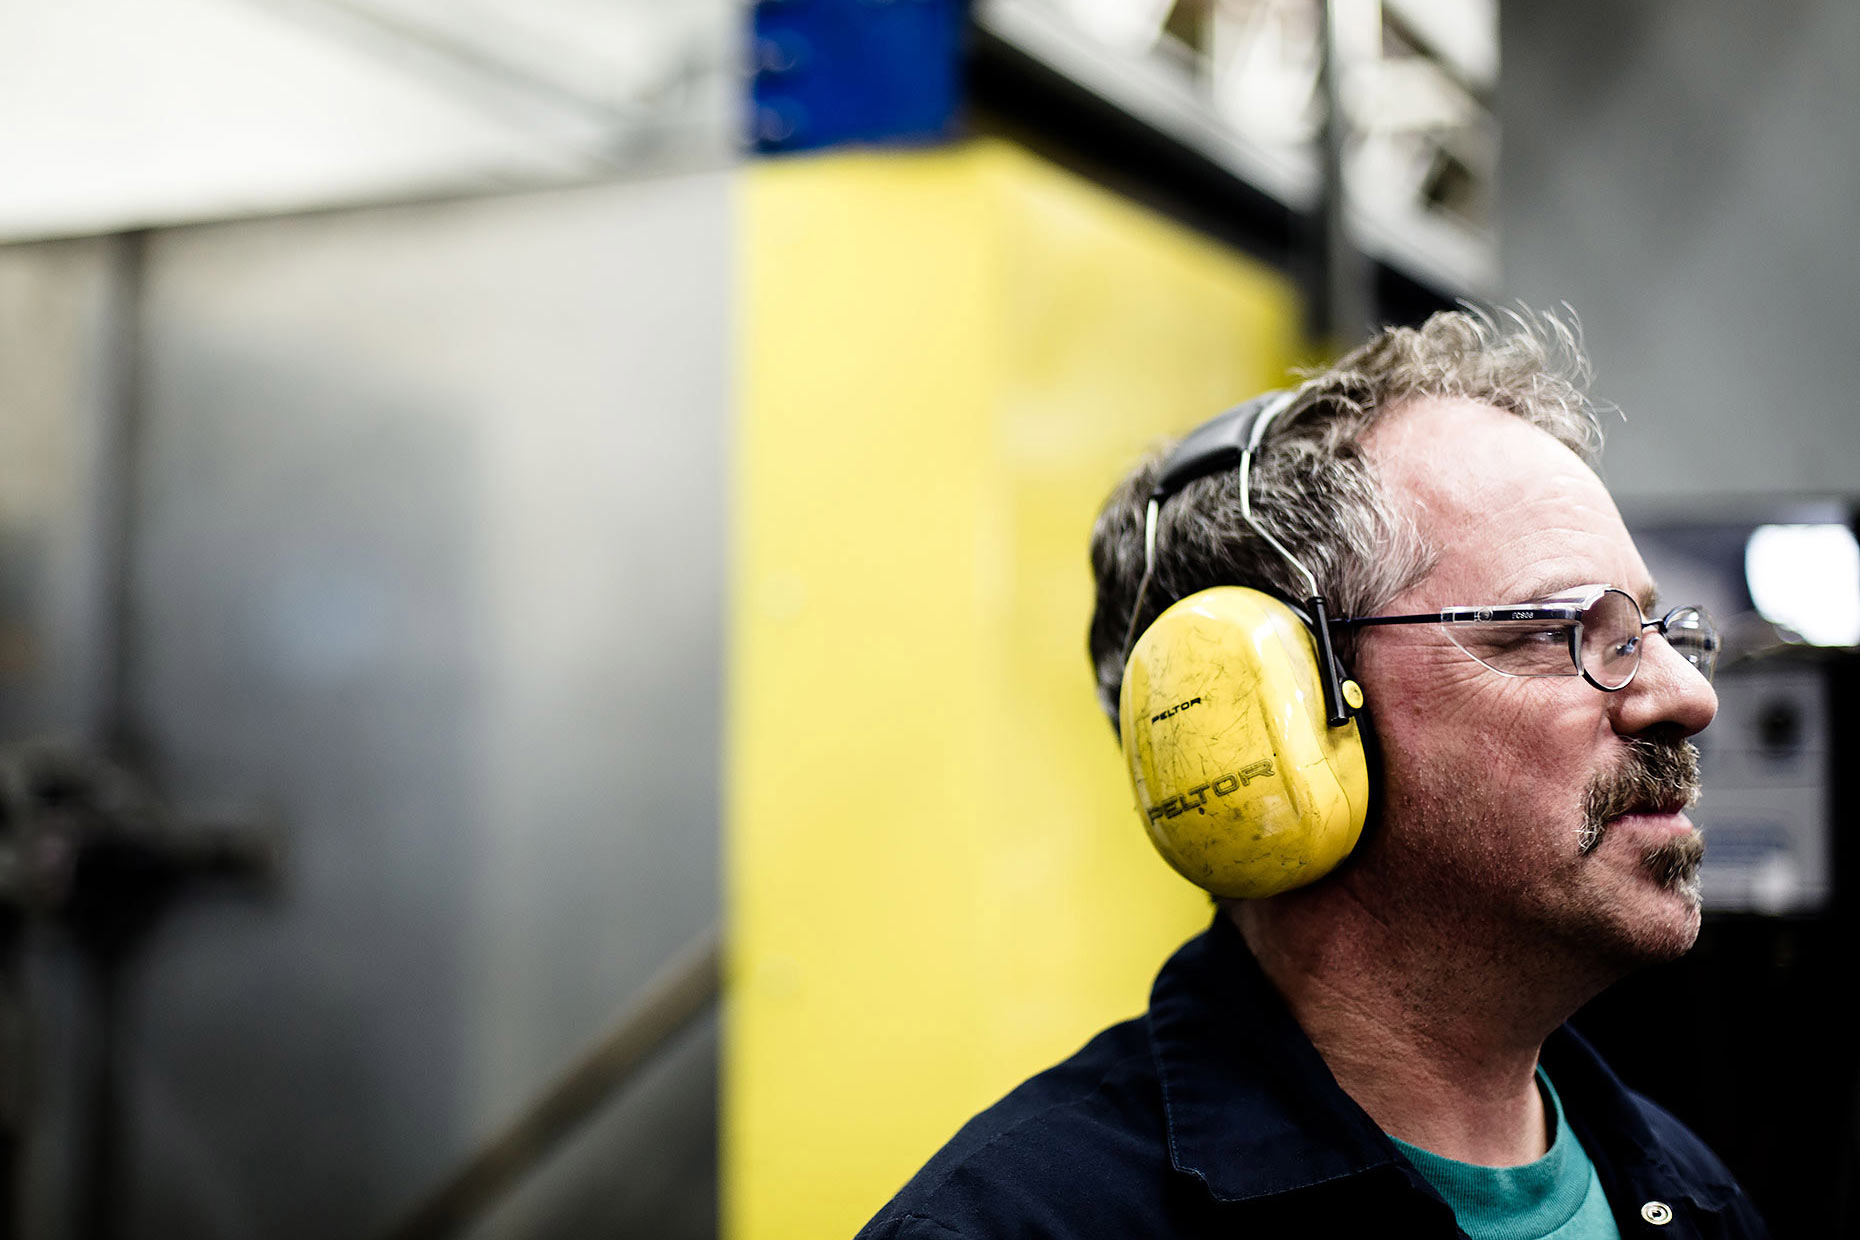 Industrial worker wearing ear protection | Scott Gable is an advertising and editorial photographer providing photography and video to corporate, industrial, healthcare, agriculture, and hi-tech clients worldwide.